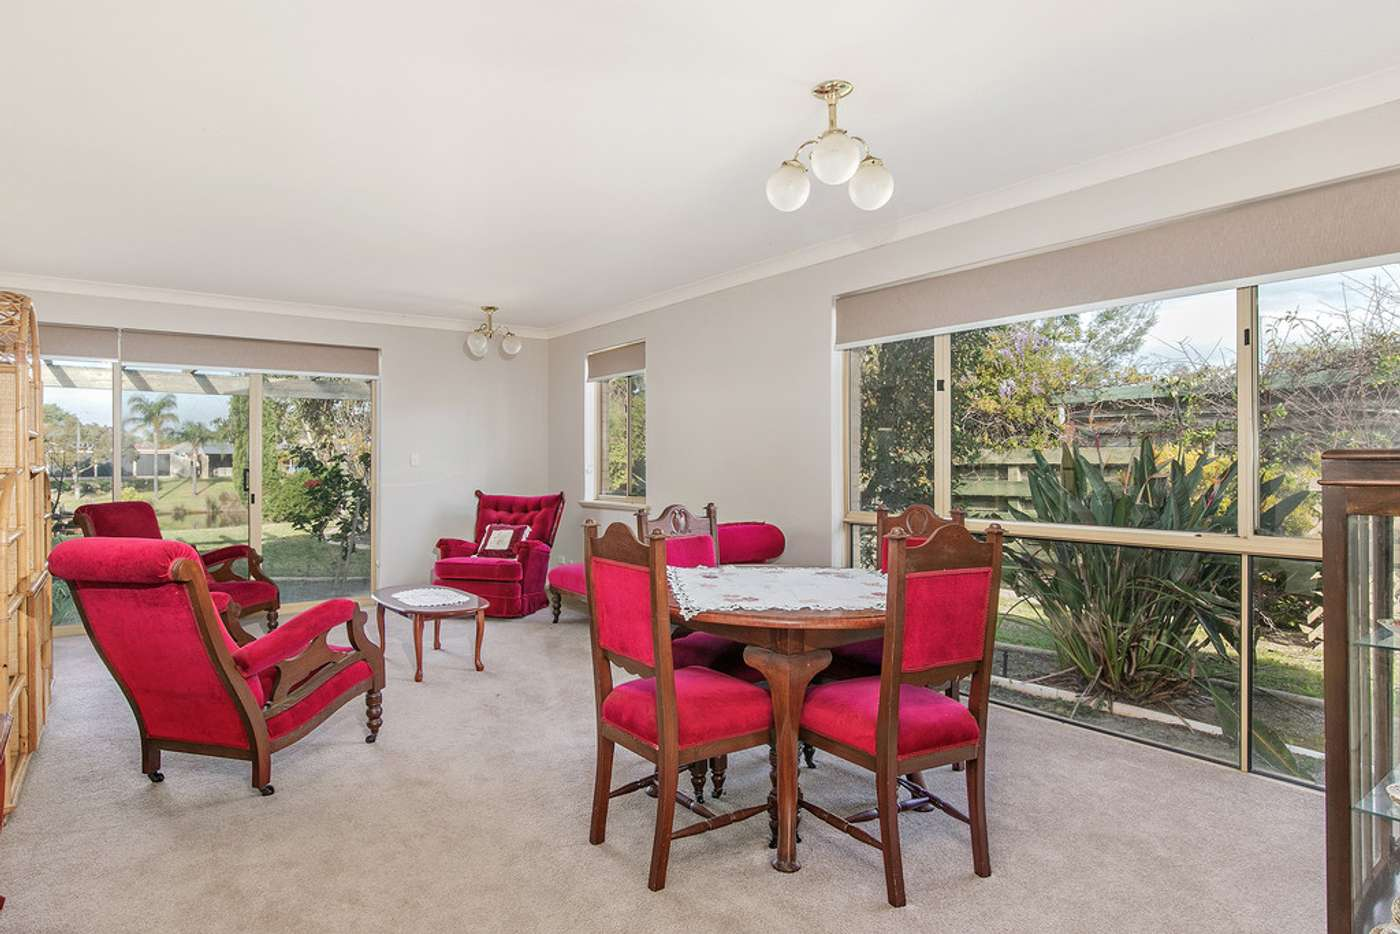 Sixth view of Homely house listing, 8 Wills Way, South Yunderup WA 6208